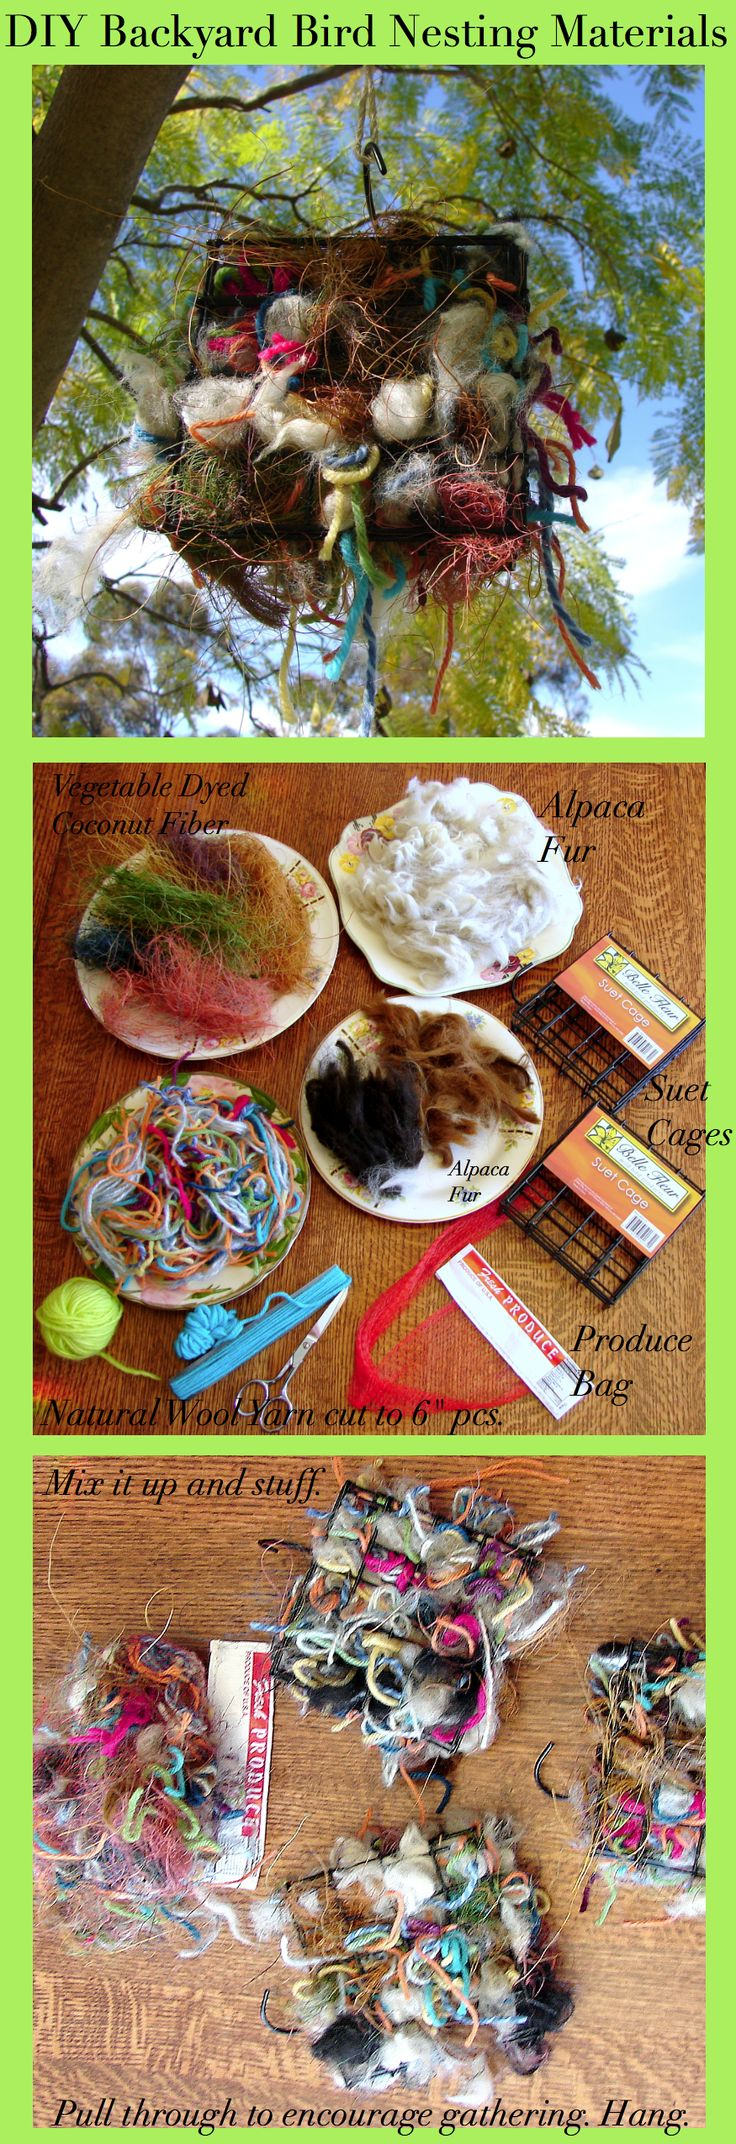 DIY - Backyard Bird Nesting Materials - Did this today for our spring birds that are coming soon. The alpaca fur, vegetable dyed coconut fibers and natural wool yarn scraps were all purchased on #etsy, and I have plenty left over for re-stuffing. The suet cages are found online for cheap; mine are from mileskimball.com, all three for under 10$ with shipping. Put next to your bird feeders and watch the fun when spring mating season begins.  :D